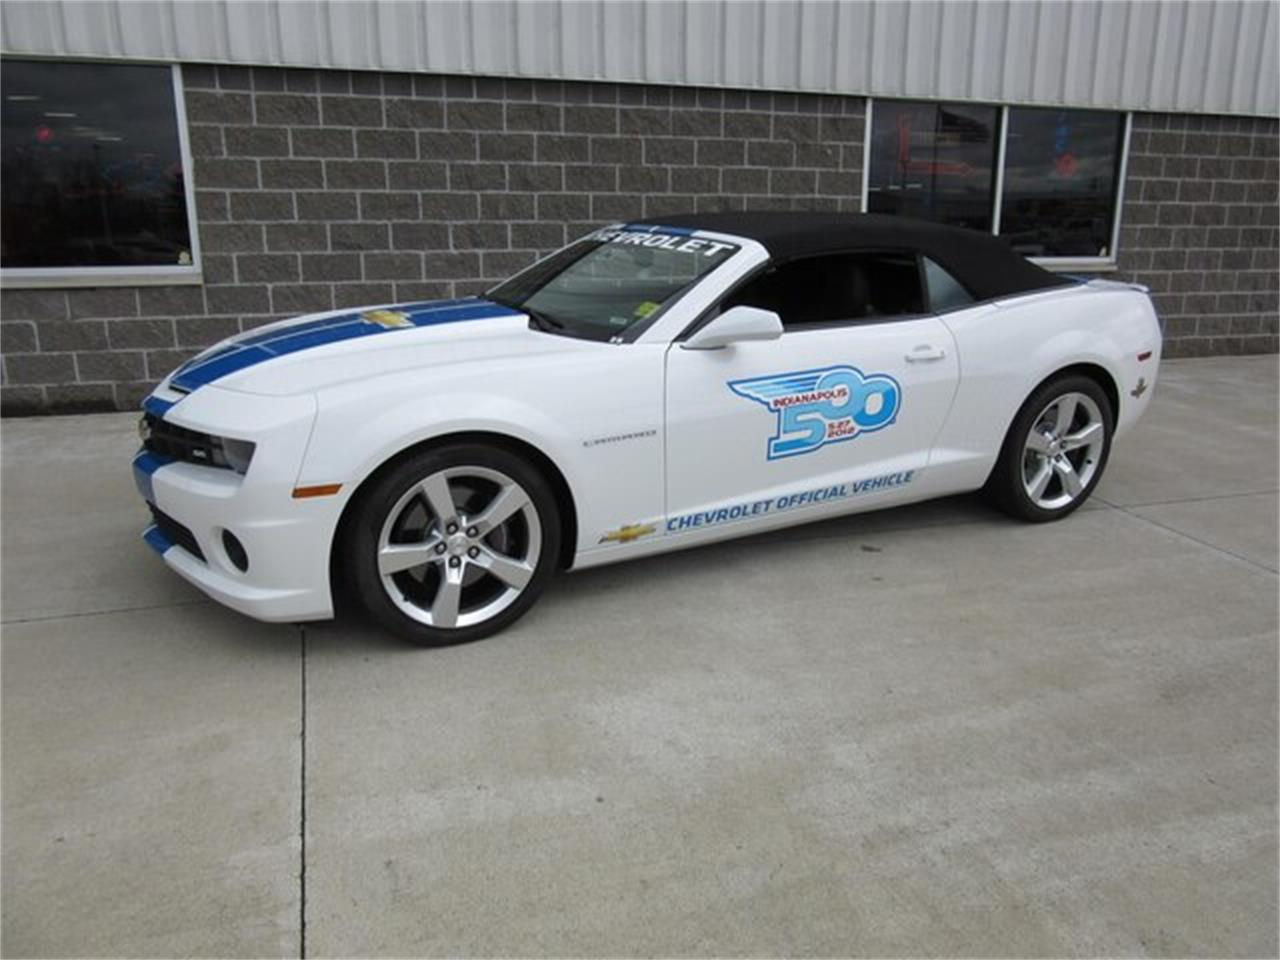 2012 Chevrolet Camaro (CC-1209316) for sale in Greenwood, Indiana